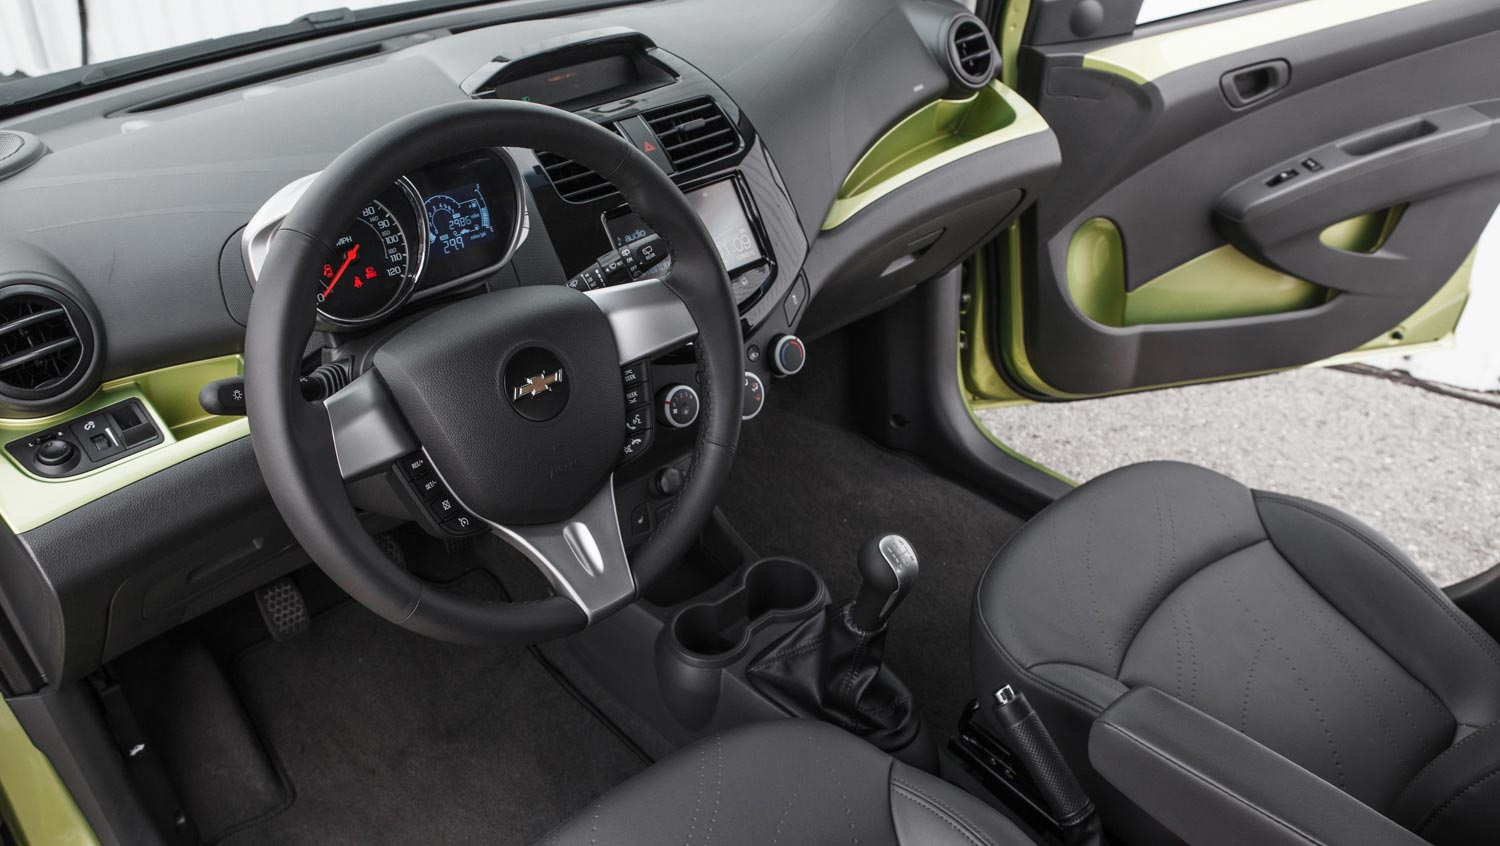 chevrolet spark interior, bestcar corfu car rental